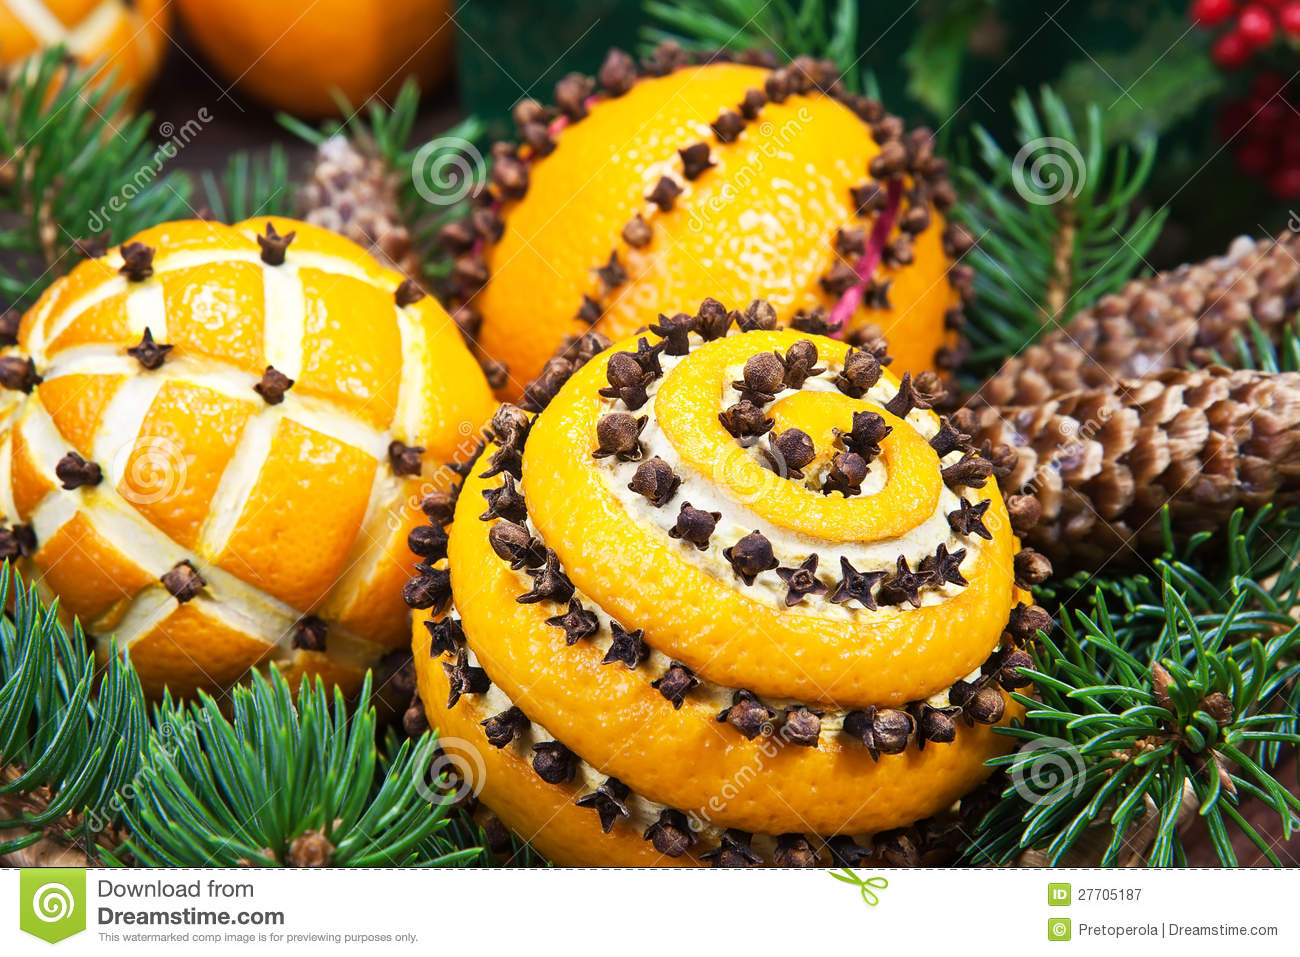 Christmas Decoration With Oranges Stock Image - Image of cinnamon ...